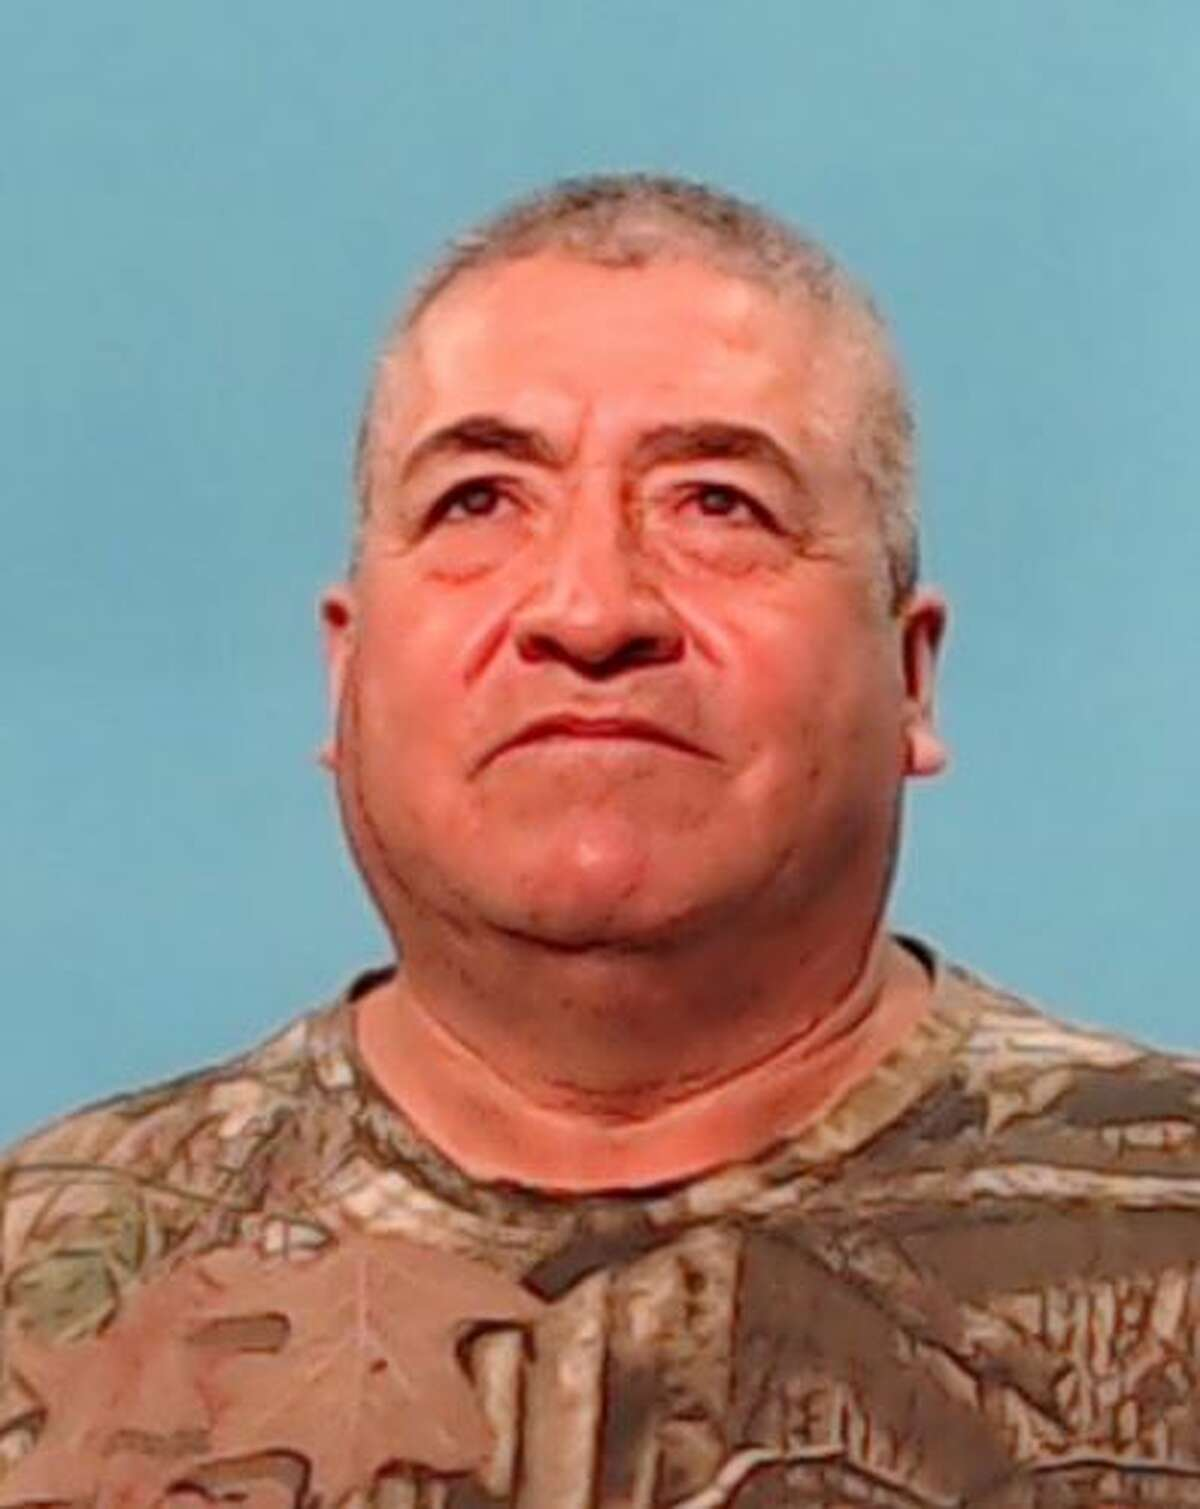 Noe Aguilera was arrested in Jan. 2019 on a third or more charge of DWI.